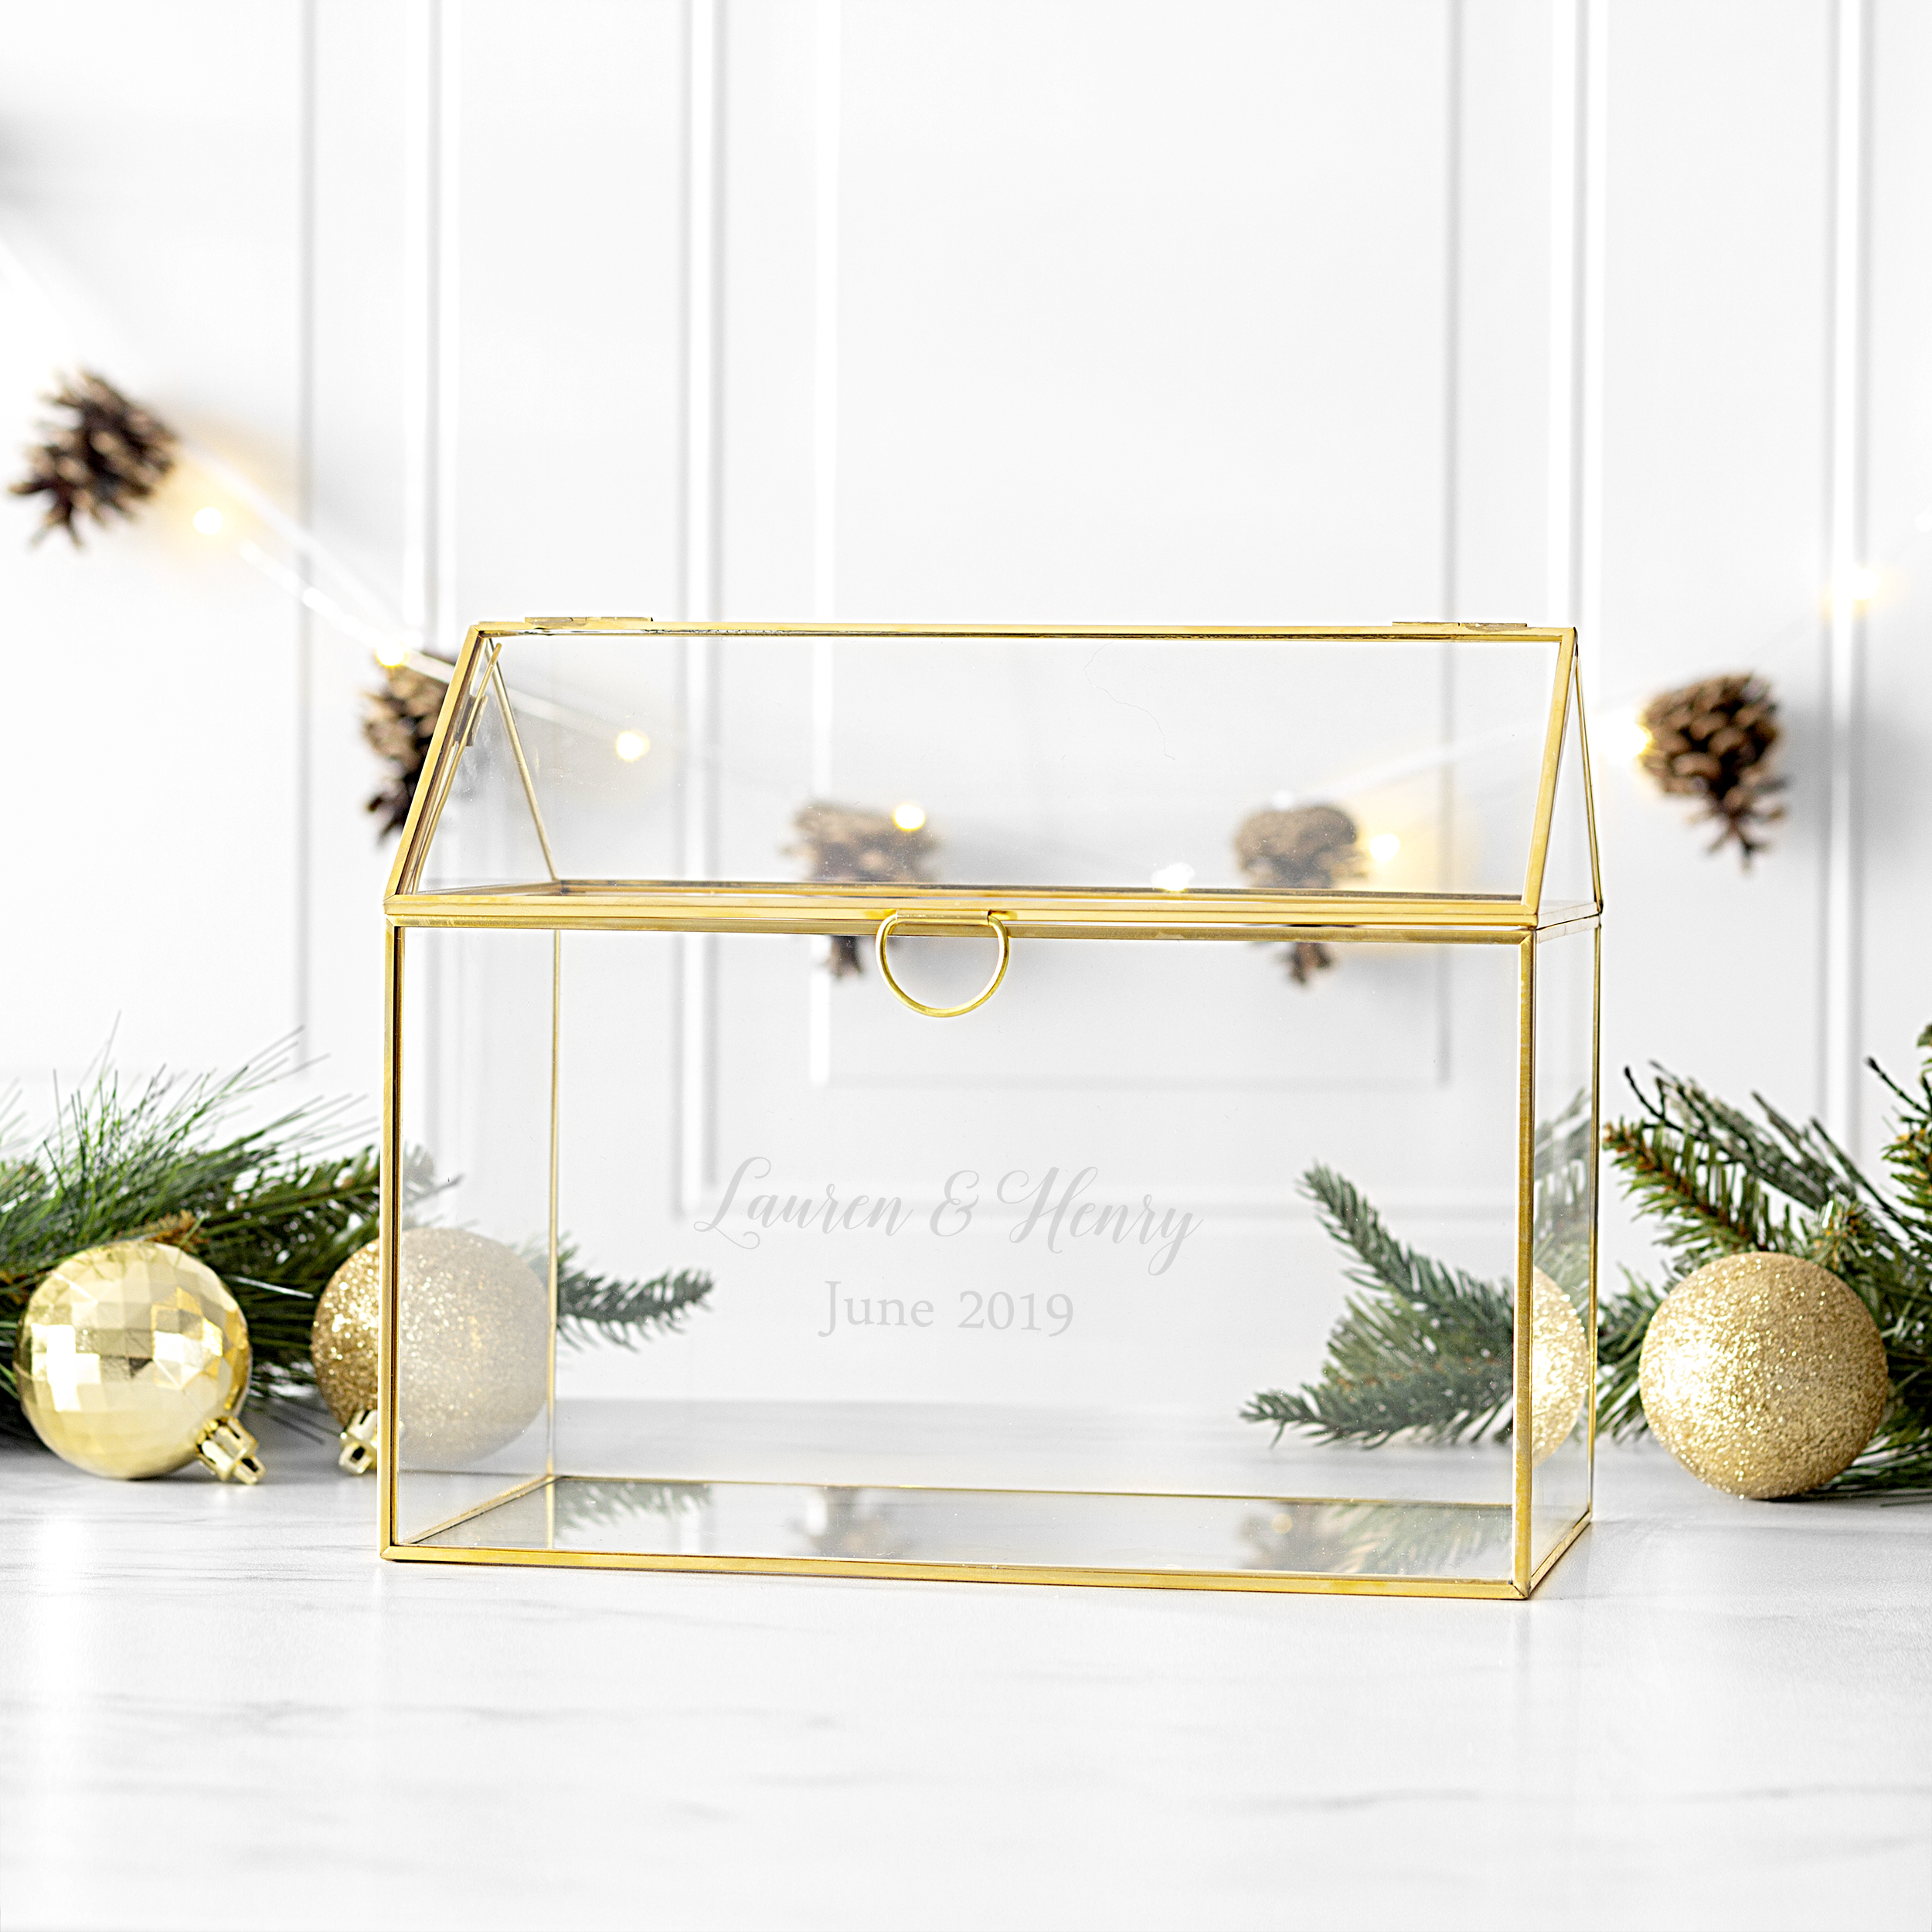 Walmart Wedding Gift Ideas: Personalized Glass Wedding Gift Card Holder, Gold